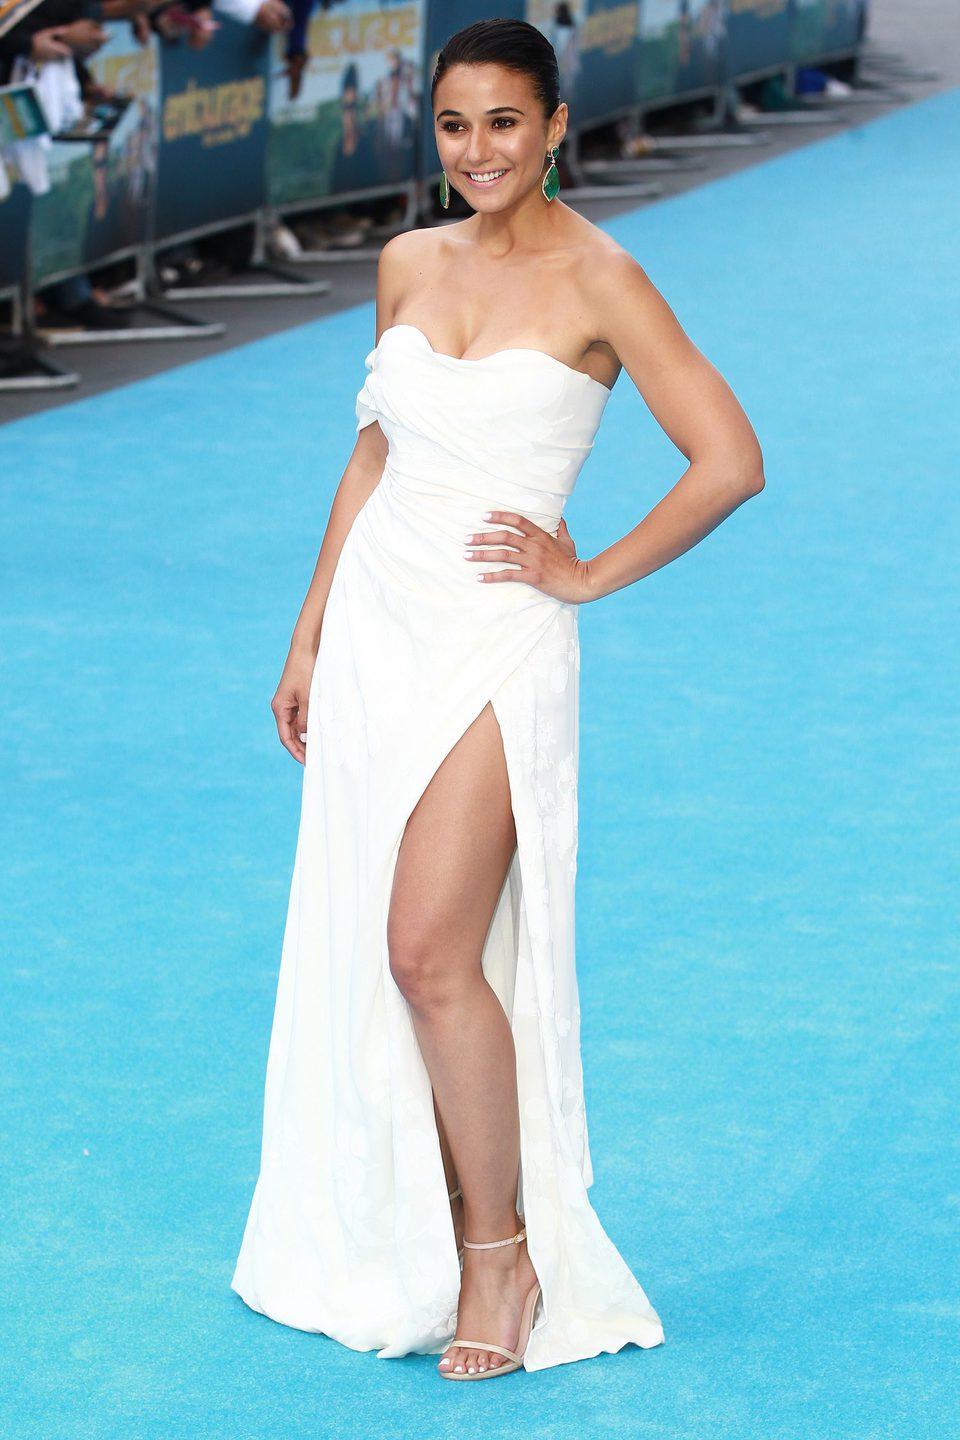 Emmanuelle Chriqui at the 'Entourage' premiere in London